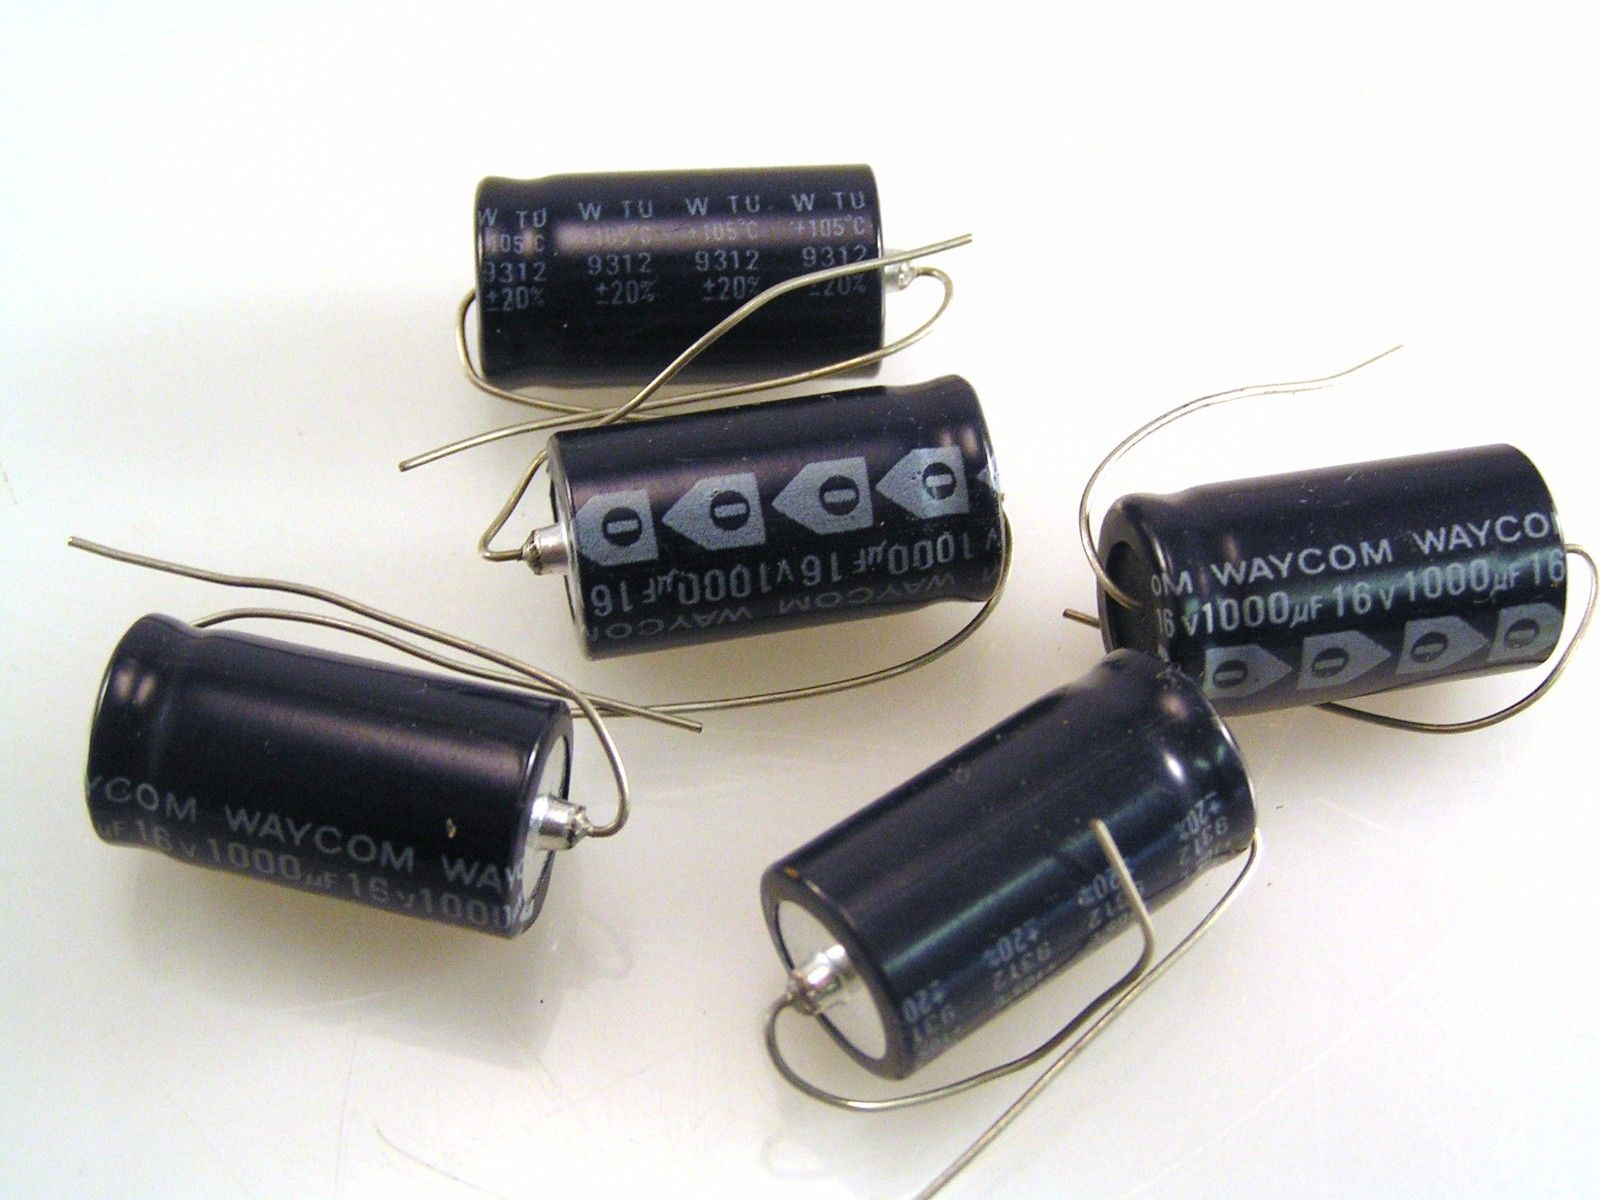 BC 2222 021 15102 Axial Electrolytic Capacitor 1000uF 16V  5 pieces OL0459